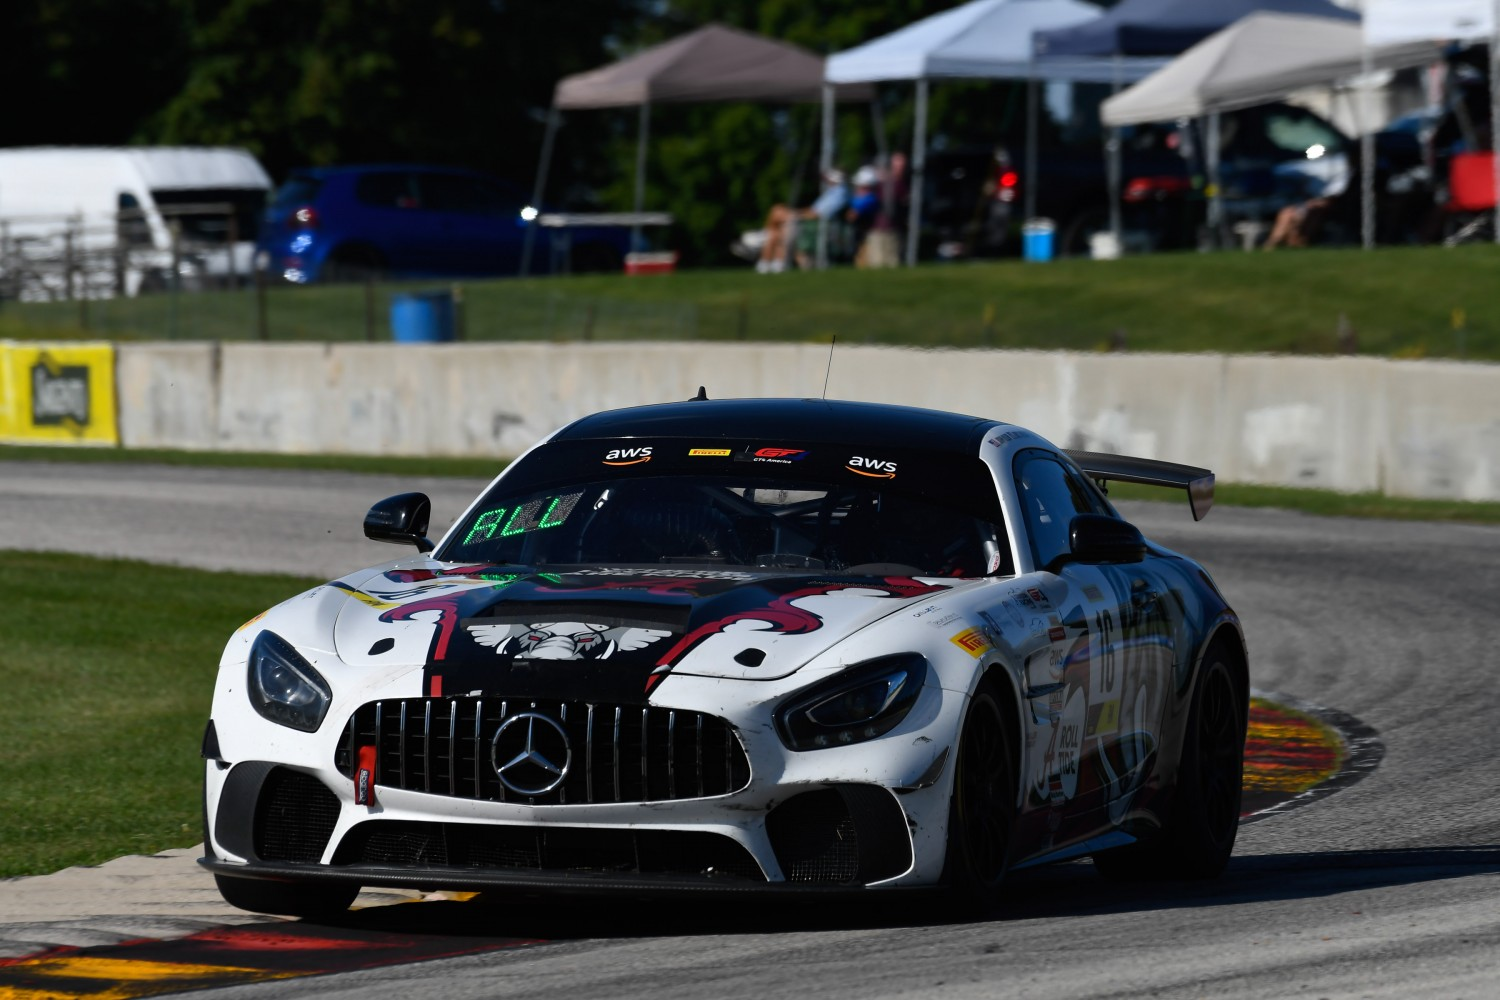 #16 Mercedes-AMG GT4 of John Allen and Kris Wilson, Rearden Racing, GT4 SprintX Am, SRO America, Road America, Elkhart Lake, WI, August 2020.  | SRO Motorsports Group